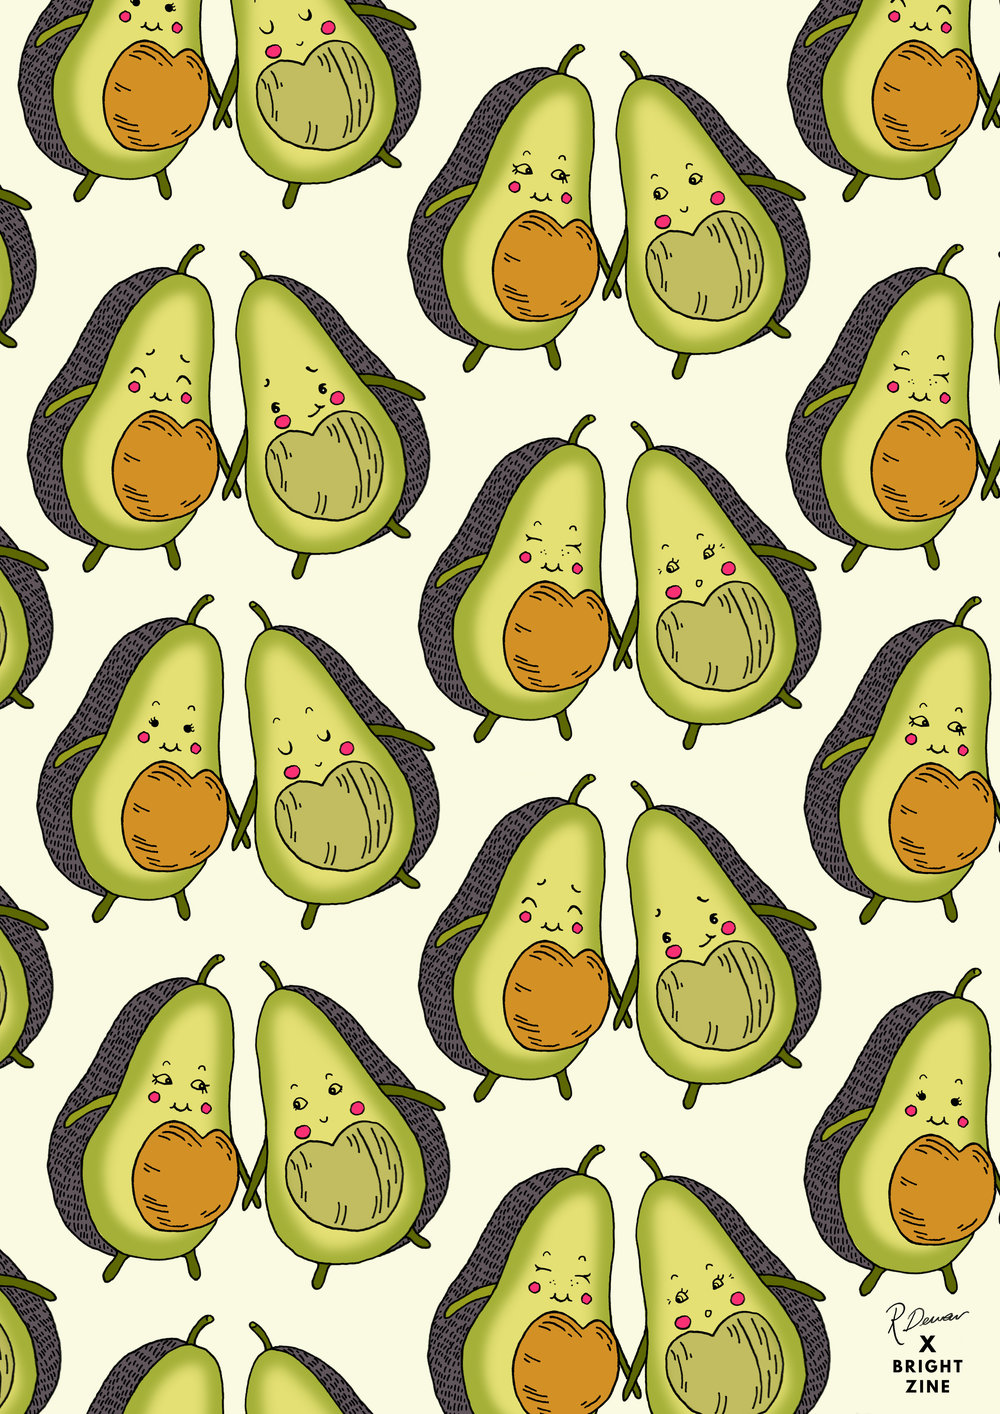 AVO PATTERN X BRIGHT.jpg